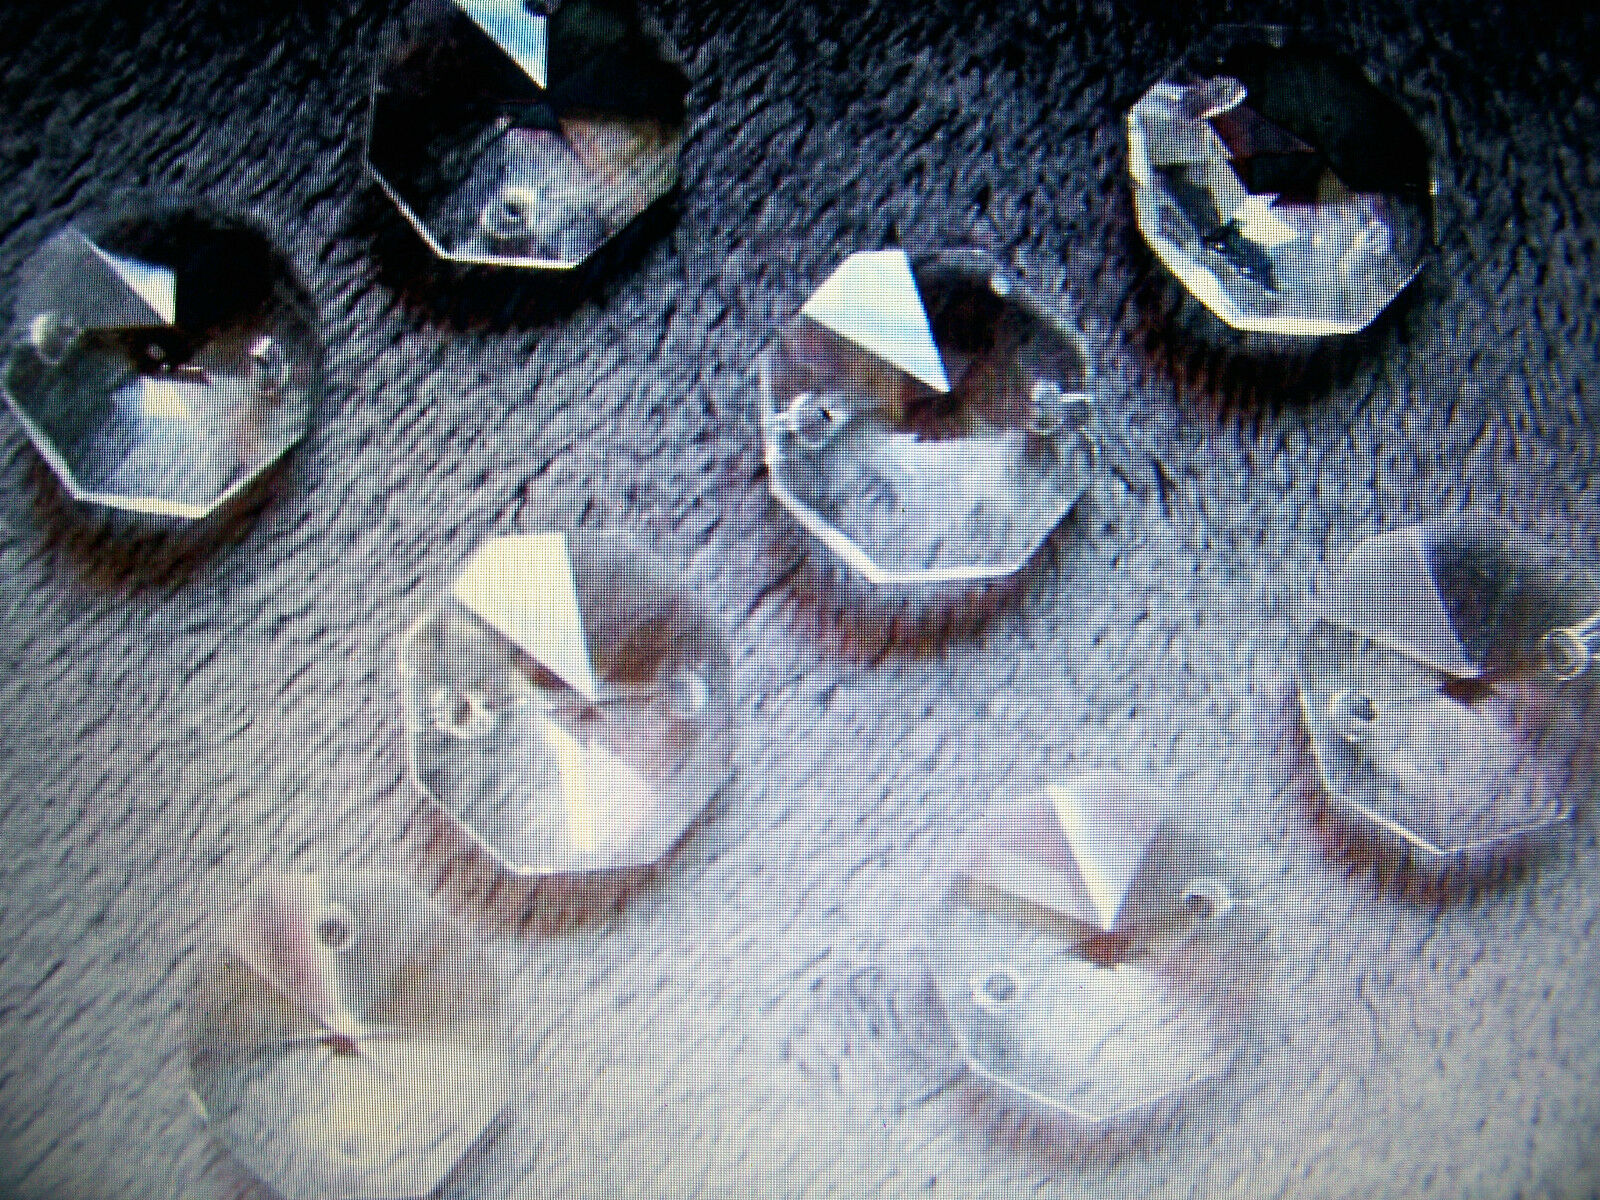 50 PCS 14MM AAA 2 HOLE OCTAGON CRYSTAL GLASS BEAD JEWELRY CHANDELIER CHAIN PART